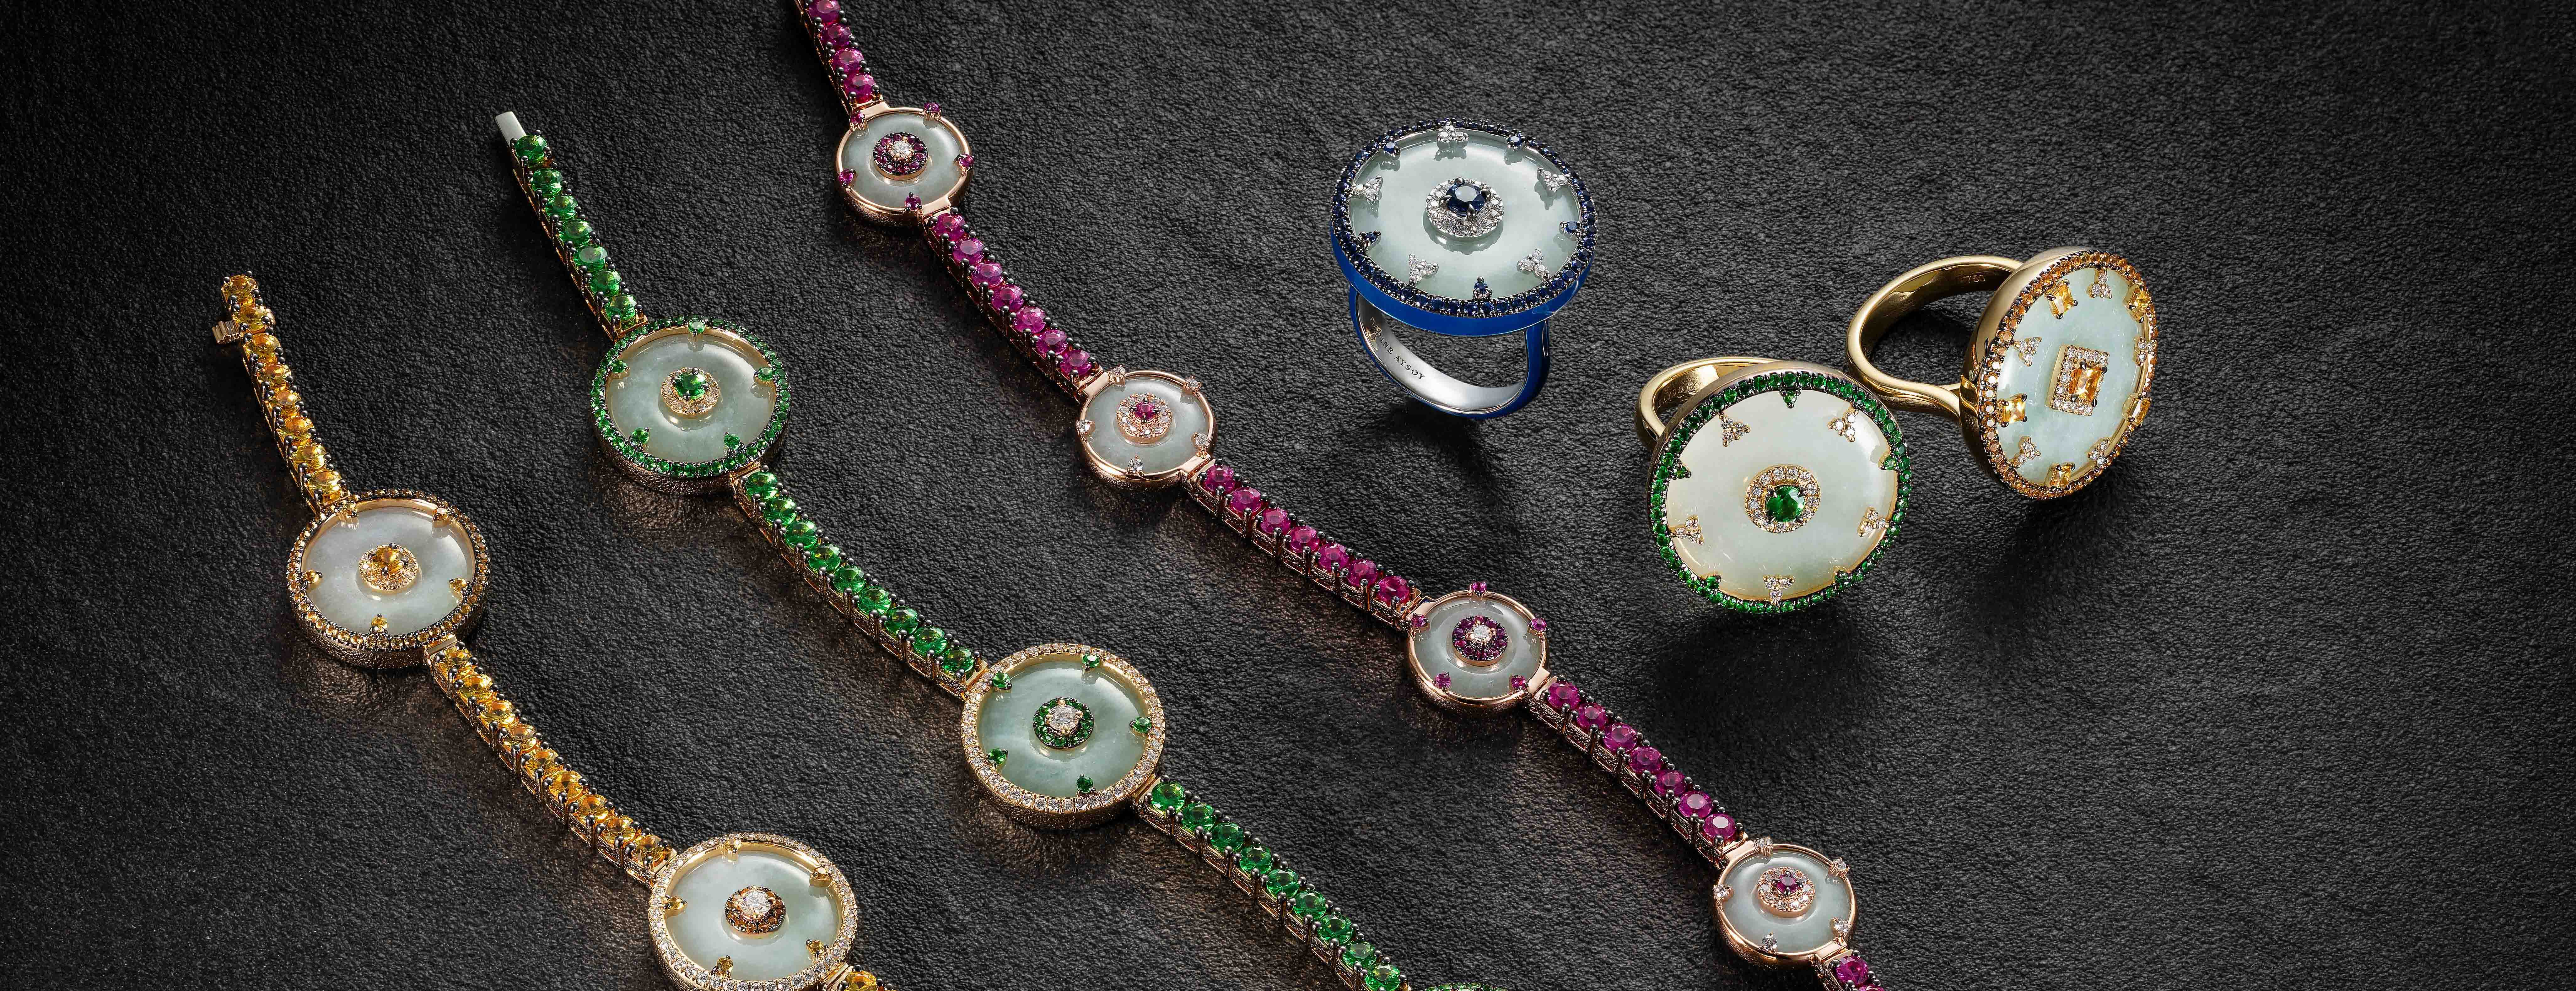 Nadine Aysoy gold Celeste collection set with white jade, diamonds and colourful sapphires